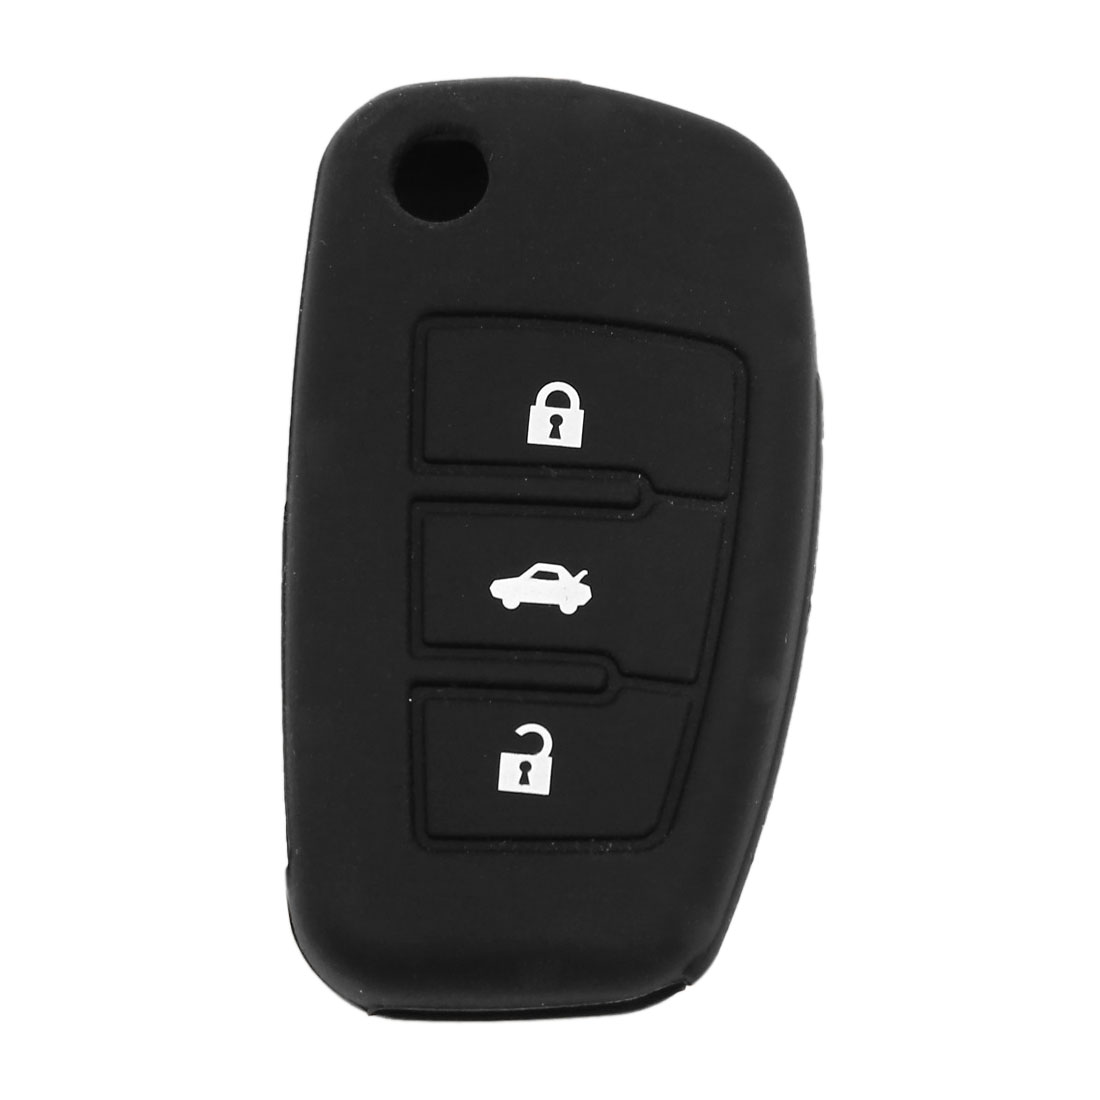 Black Silicone Remote Fob Key Cover 3 Buttons for Audi A6L Q7 TT R8 A3 A4L 2009